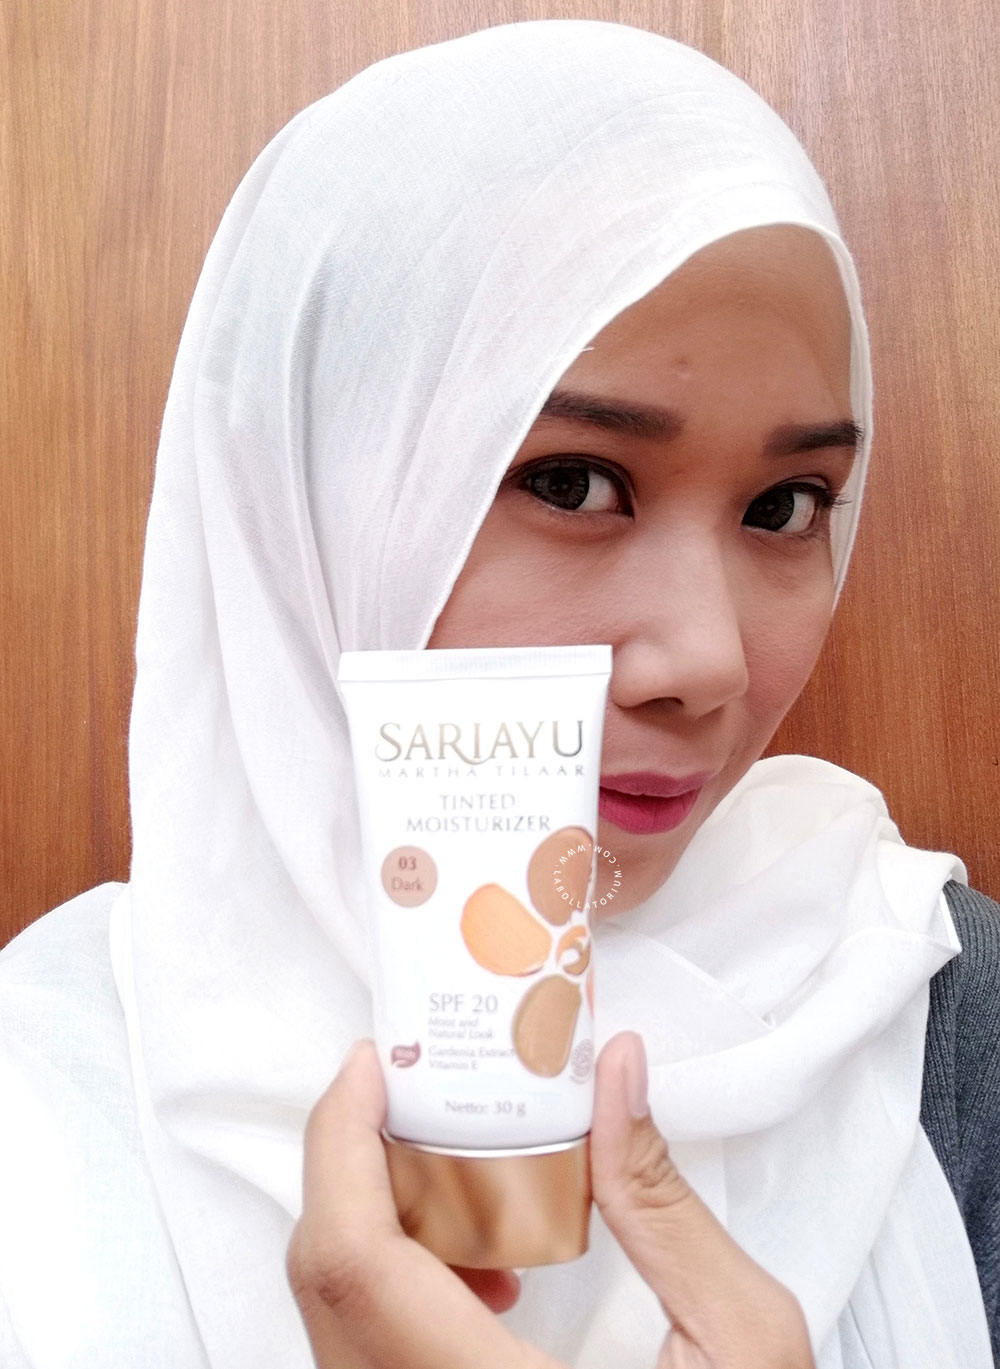 Tinted Moisturizer Review for Daily Make Up - Sariayu Martha Tilaar